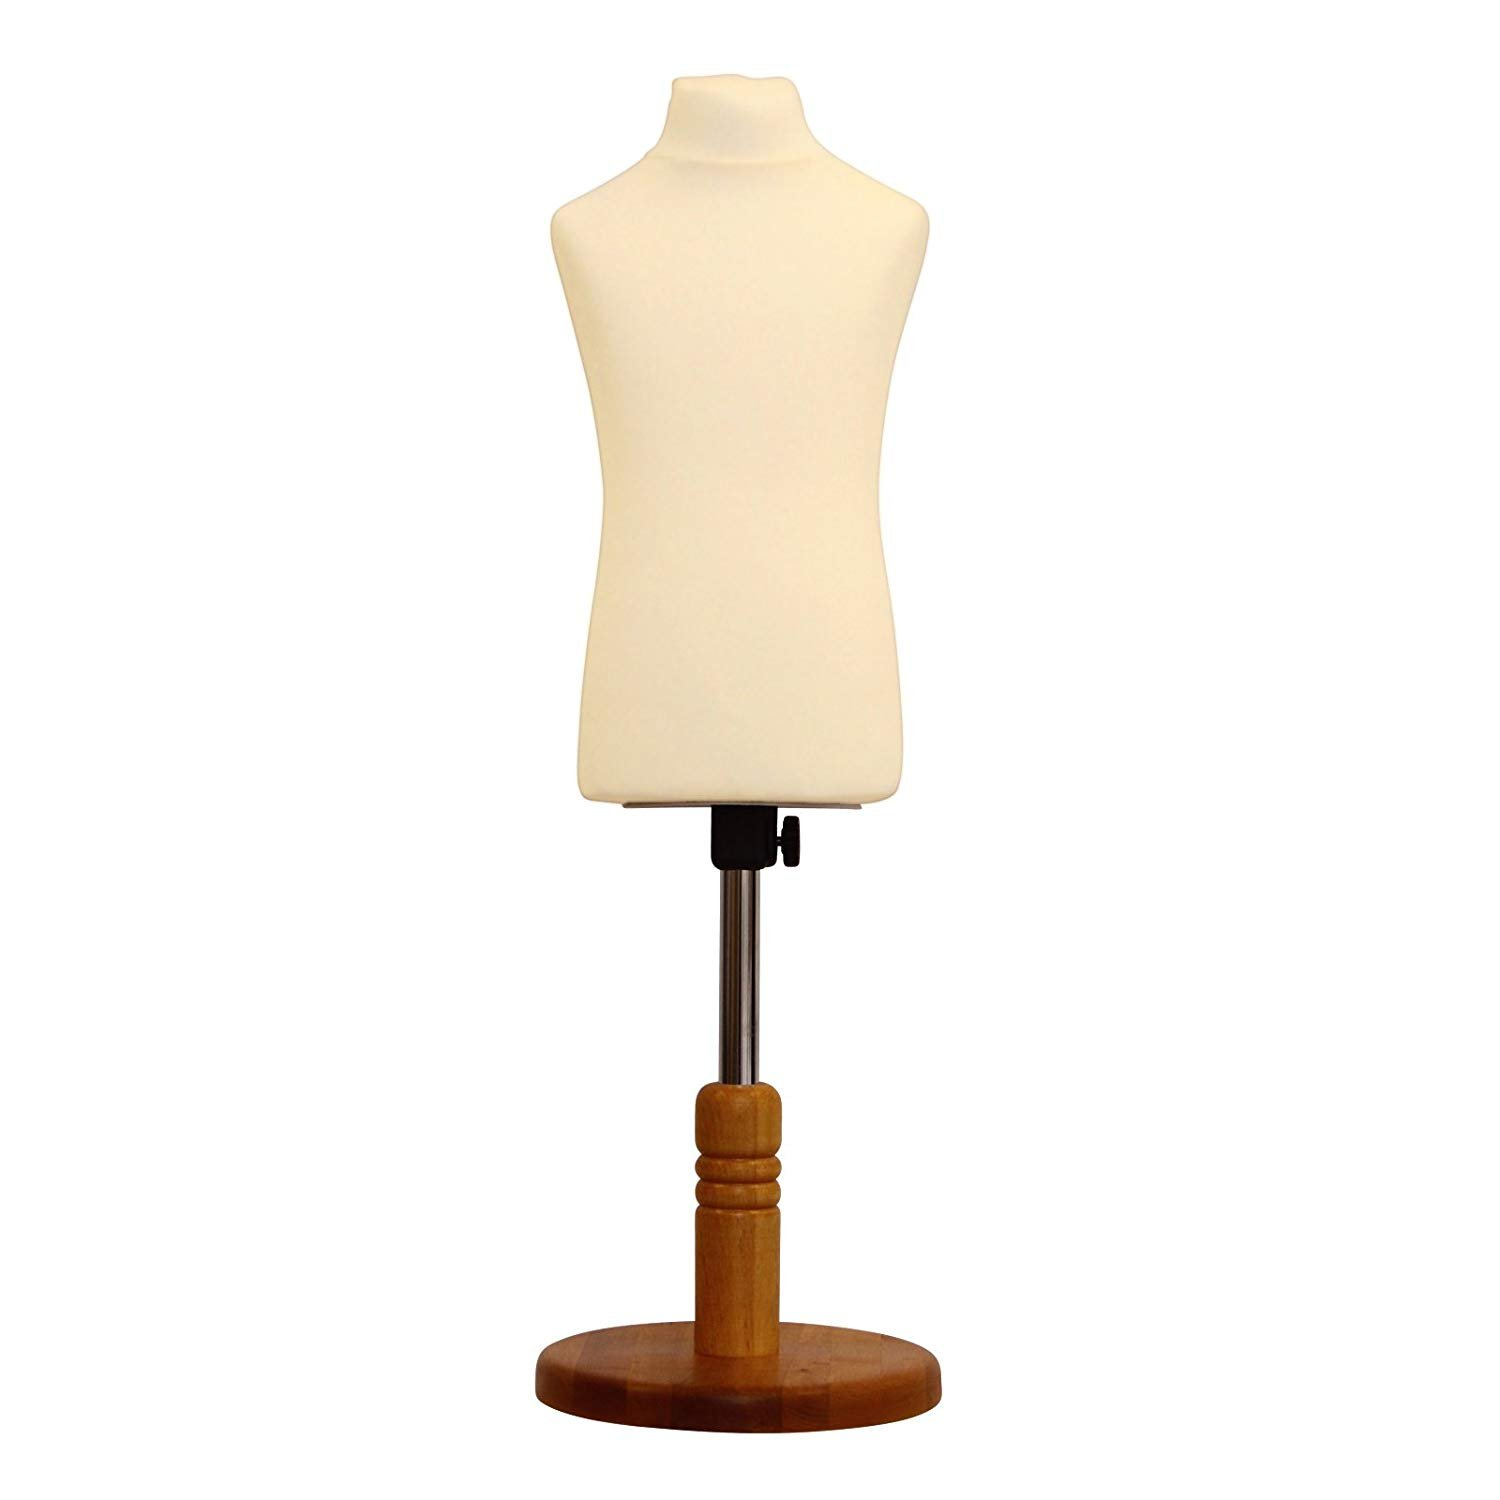 The Shopfitting Shop DELUXE Size 8 Female Dressmakers Dummy Tailors Mannequin Bust CREAM Jersey WHITE WOOD Tripod Stand